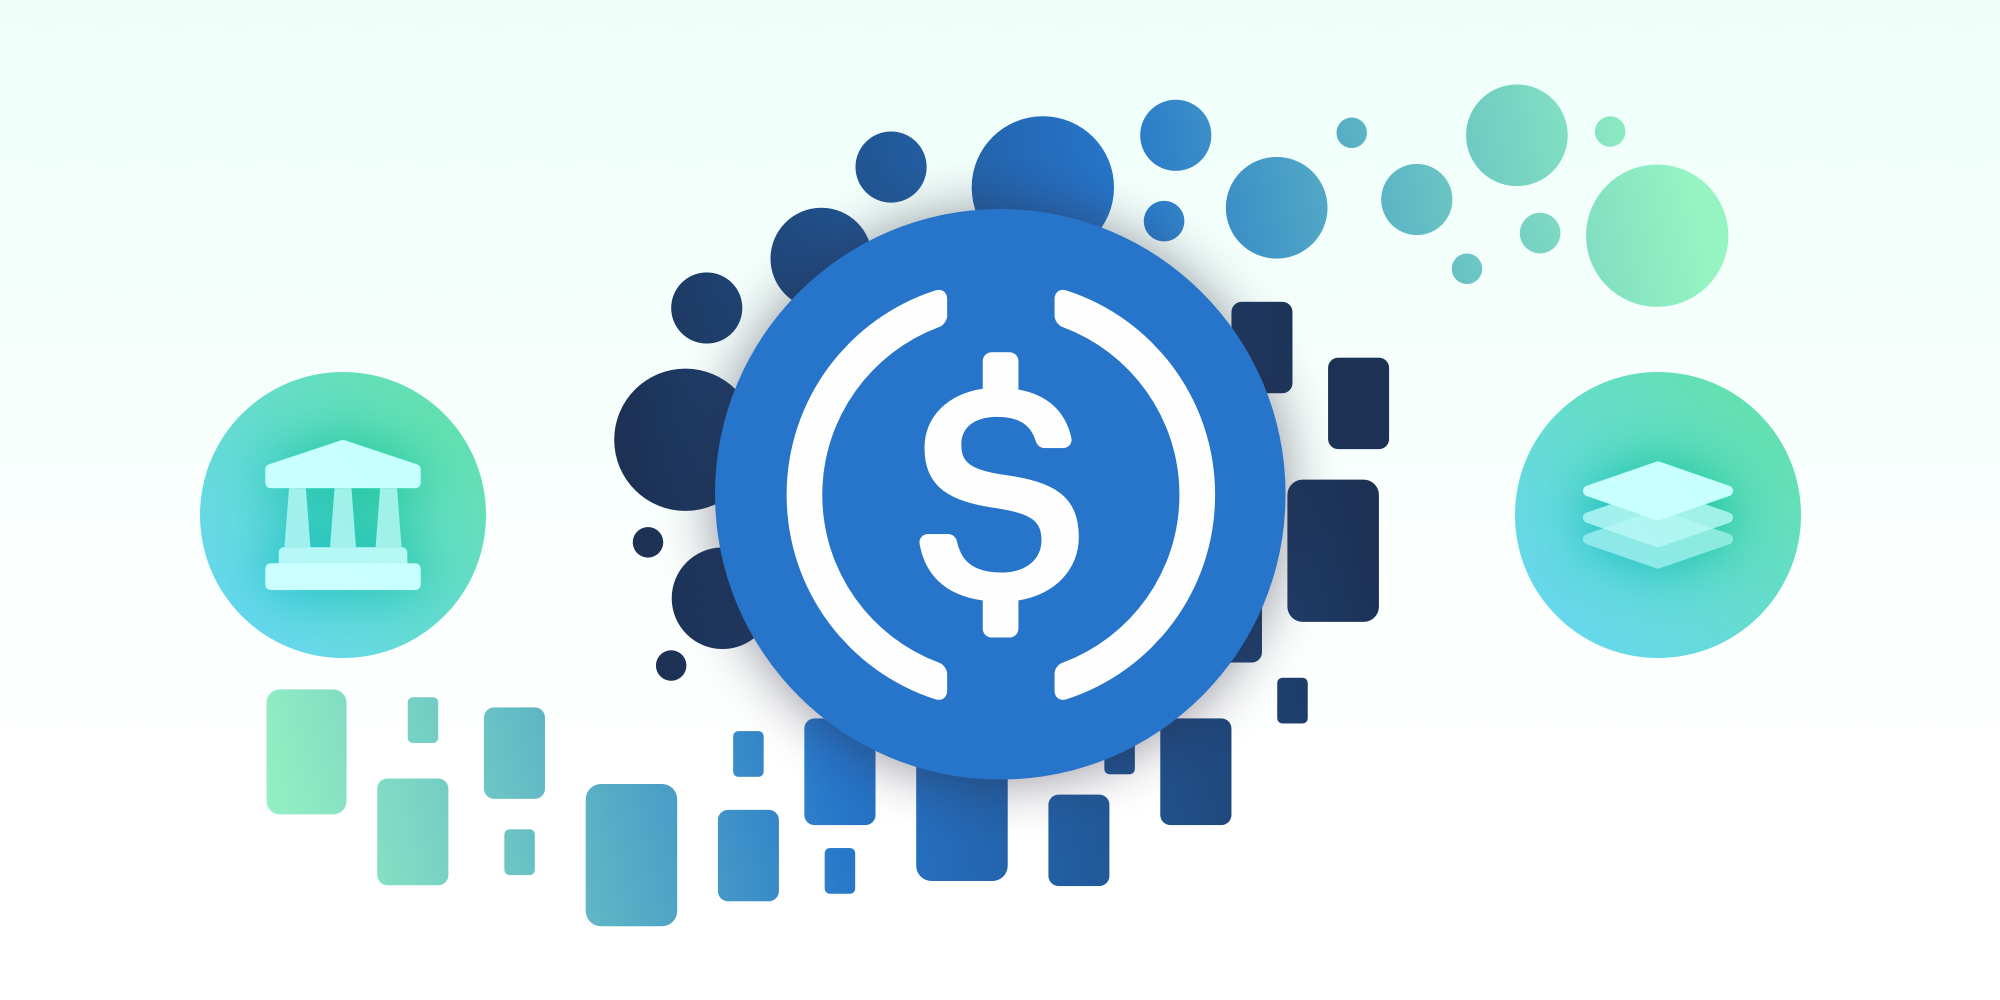 Dollar stablecoins, such as USD Coin (USDC), enable treasury departments and financial institutions to tap into the yield-generation opportunities found in DeFi and CeFi that typically provide higher yields than traditional fixed income securities.